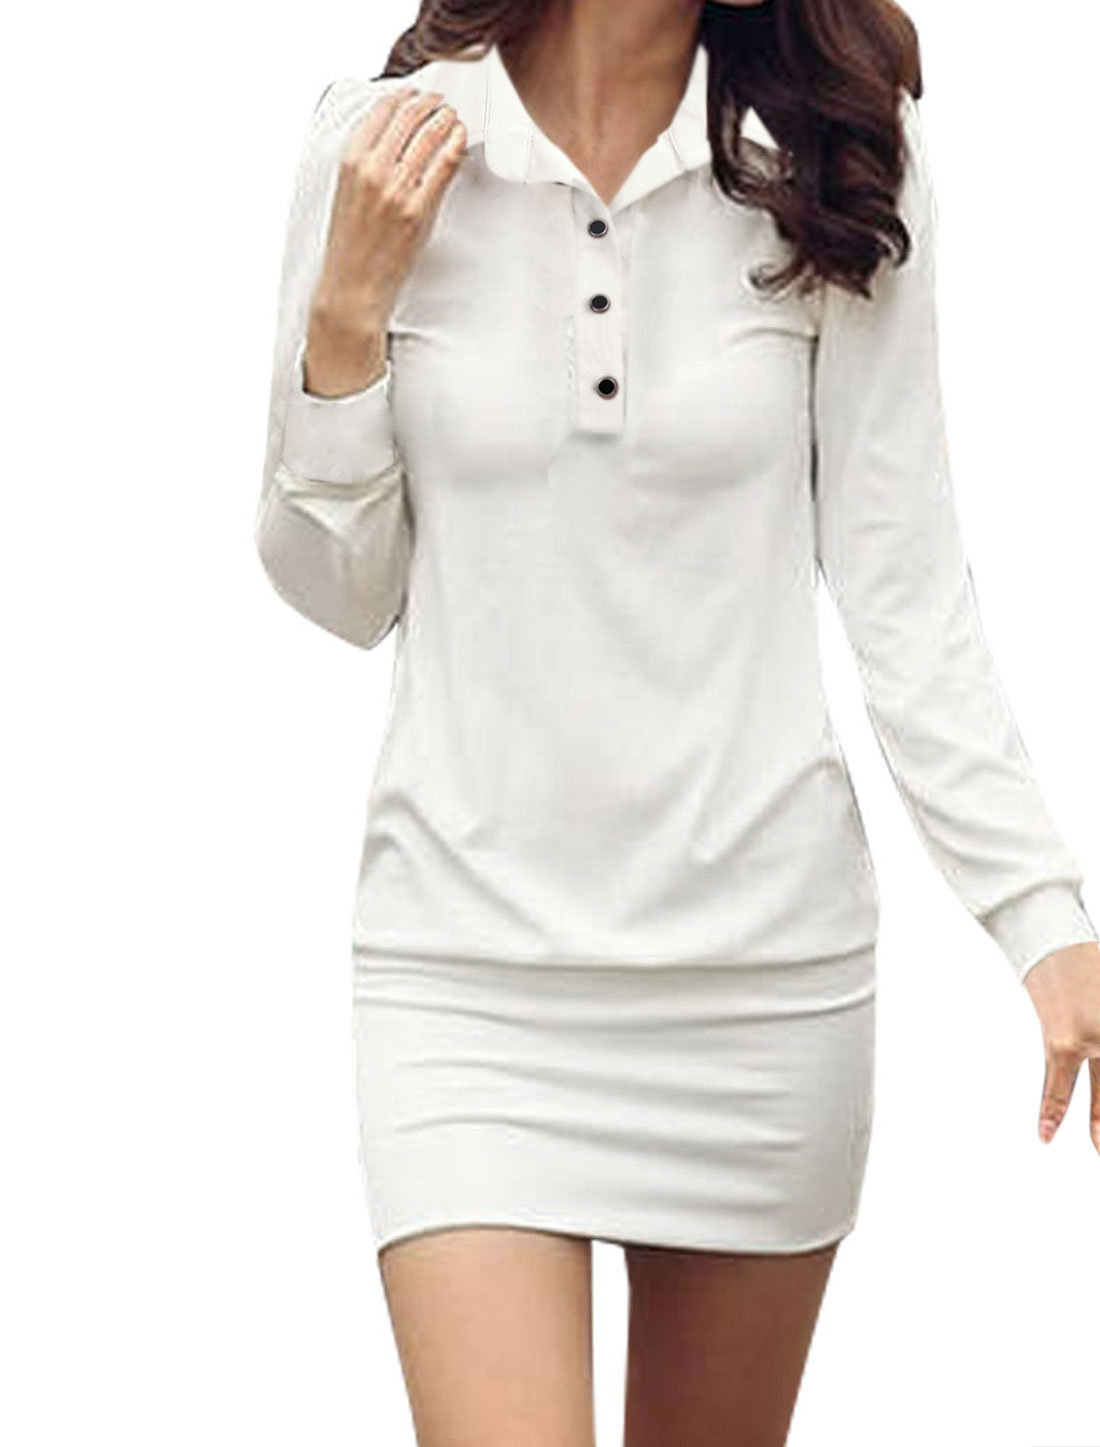 Women White Long Sleeve Buttons Decor Side Close-fitting Stretch Mini Dress L